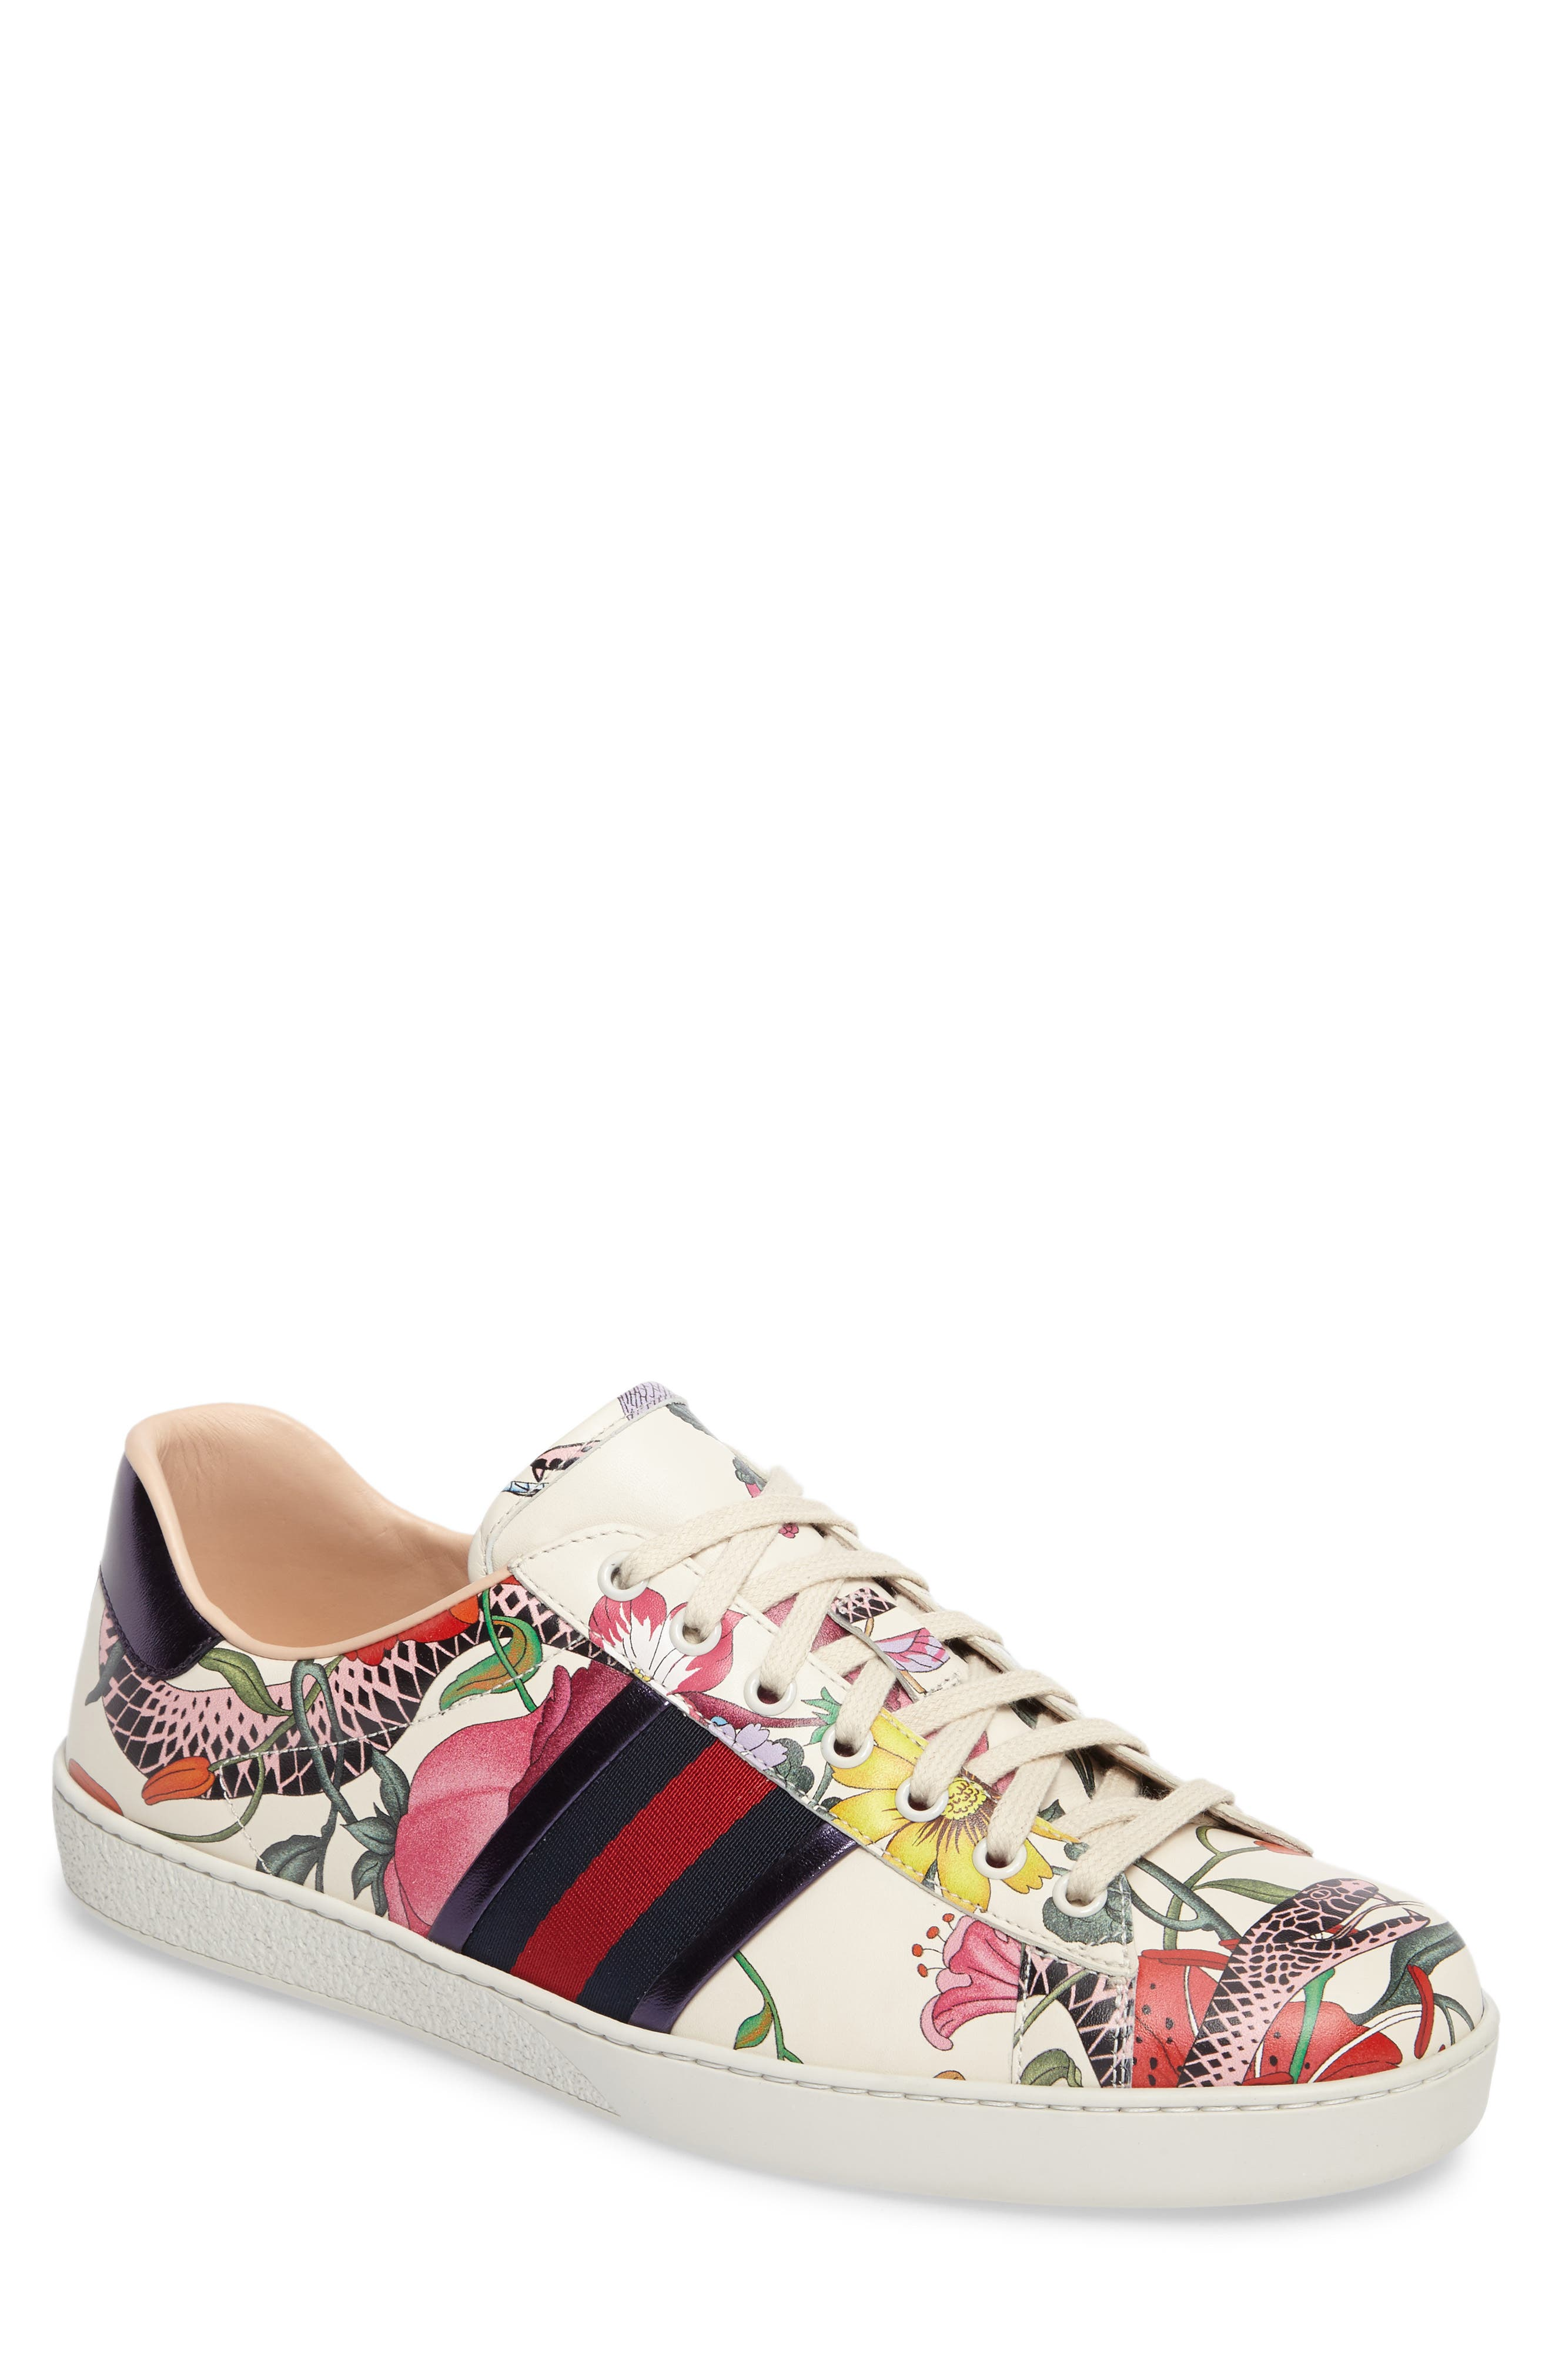 Alternate Image 1 Selected - Gucci New Ace Floral Dino Sneaker (Men)